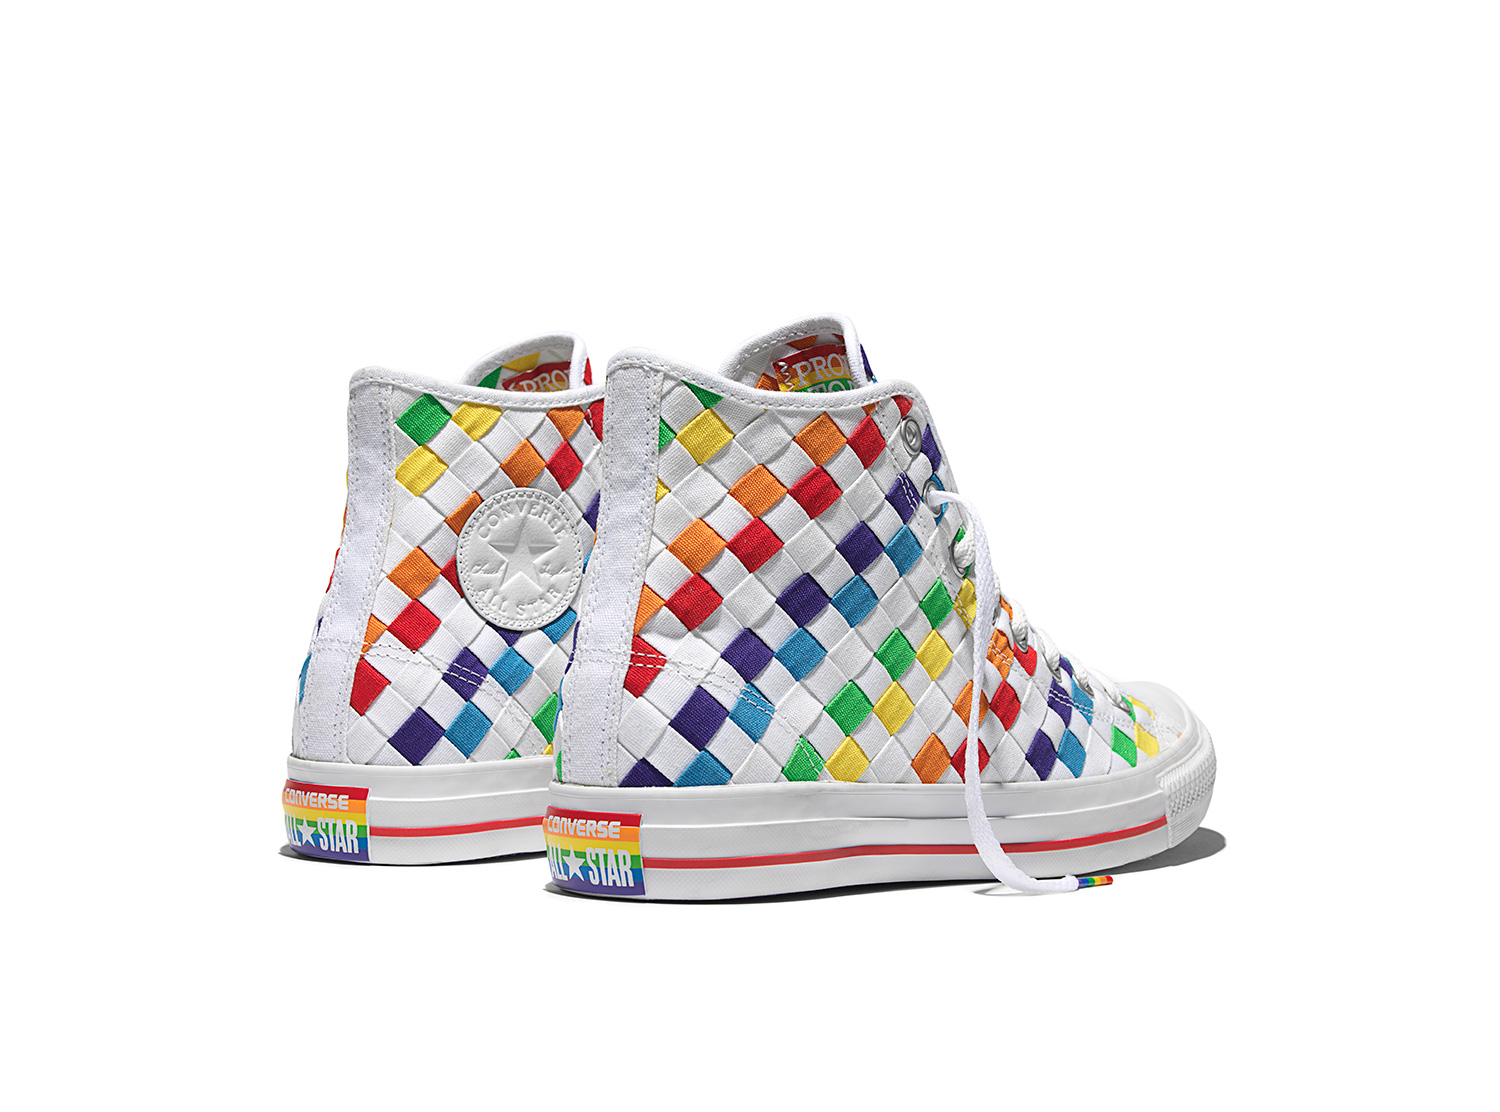 a93323d2e338 Launching this spring on the classic Converse Chuck Taylor hi and ox  silhouettes